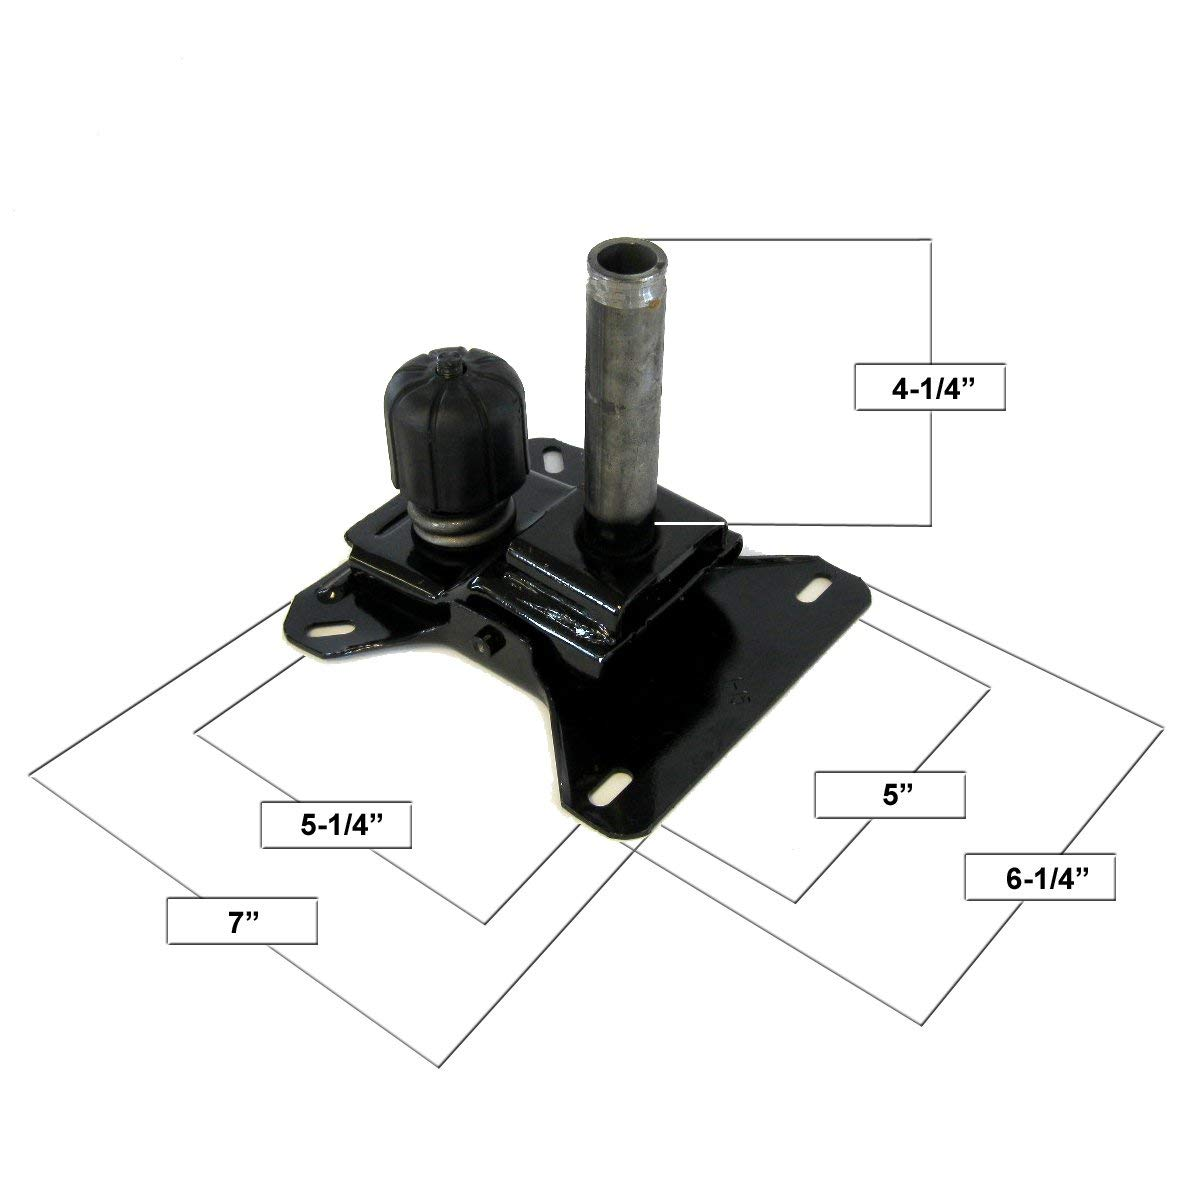 Replacement Swivel & Tilt for Caster Chairs by Caster Chair Company